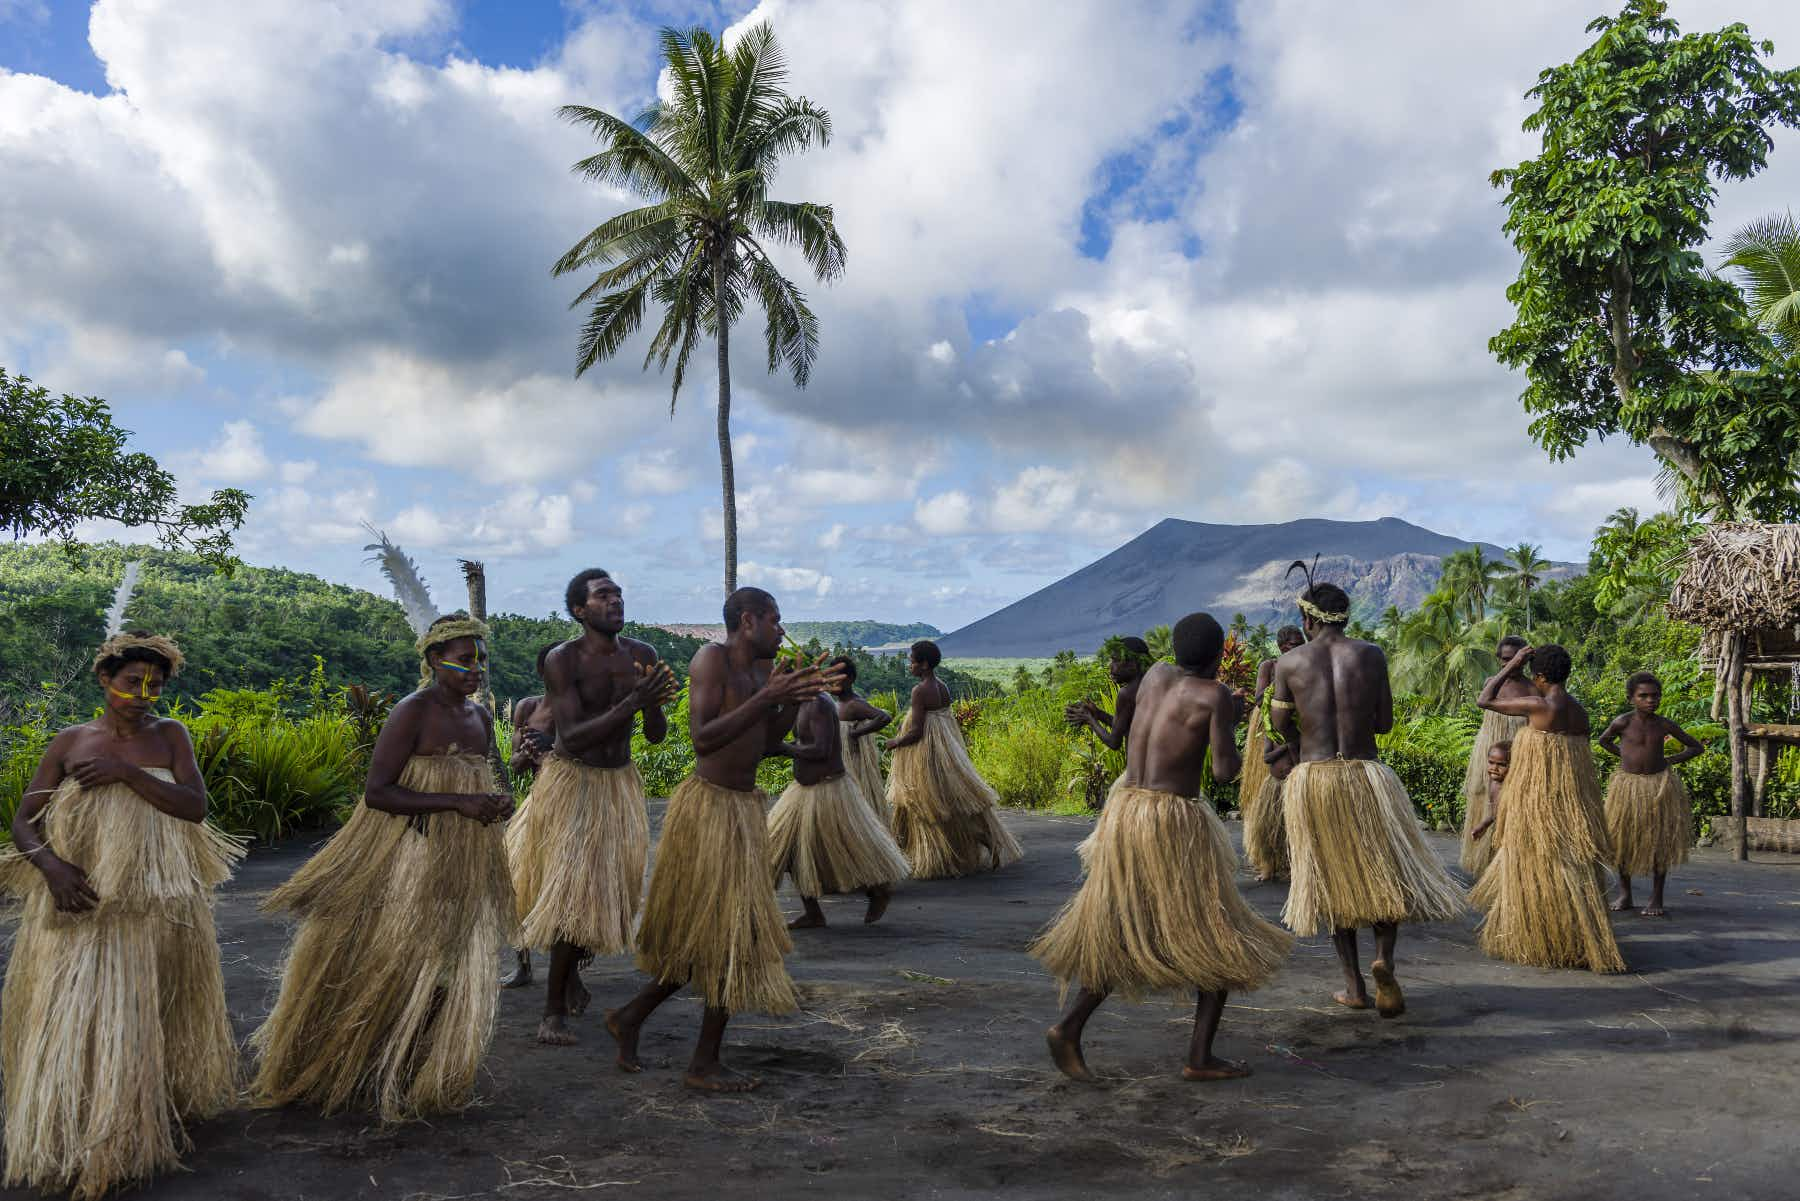 The traditional Toka festival is the highlight of this new Vanuatu tour